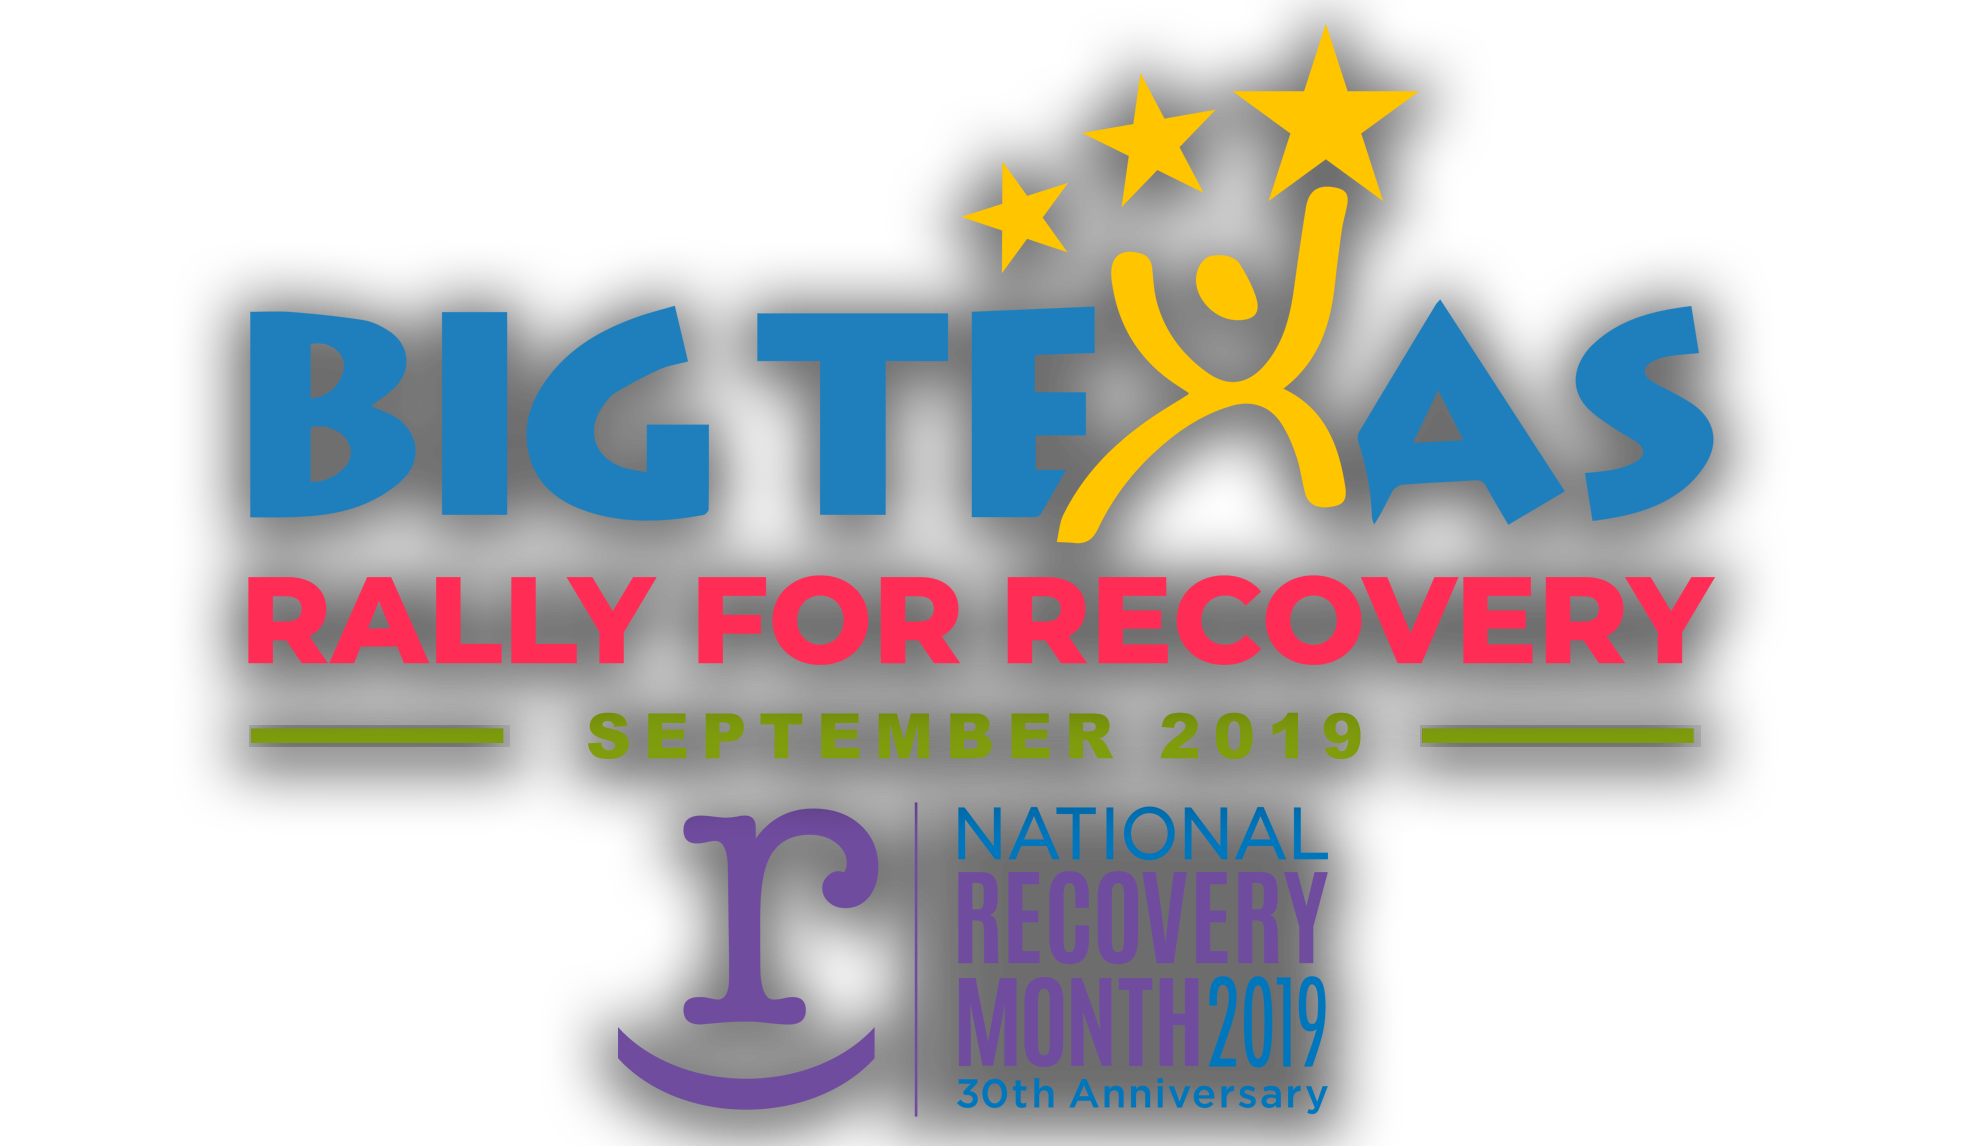 Big Texas Rally for Recovery - September 2019